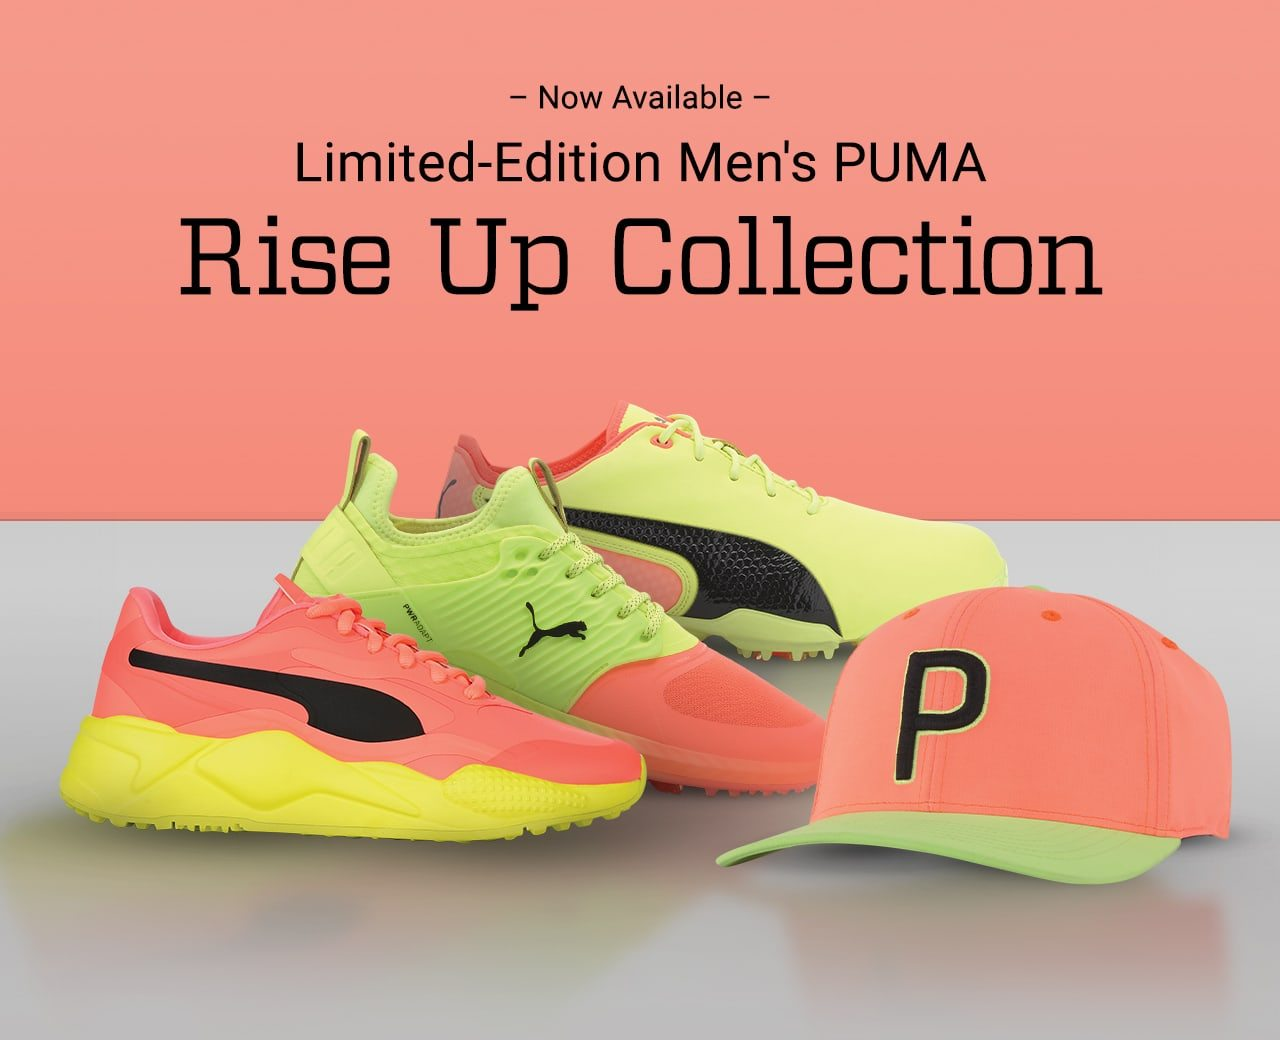 Now available. Limited-edition men's puma rise up collection.